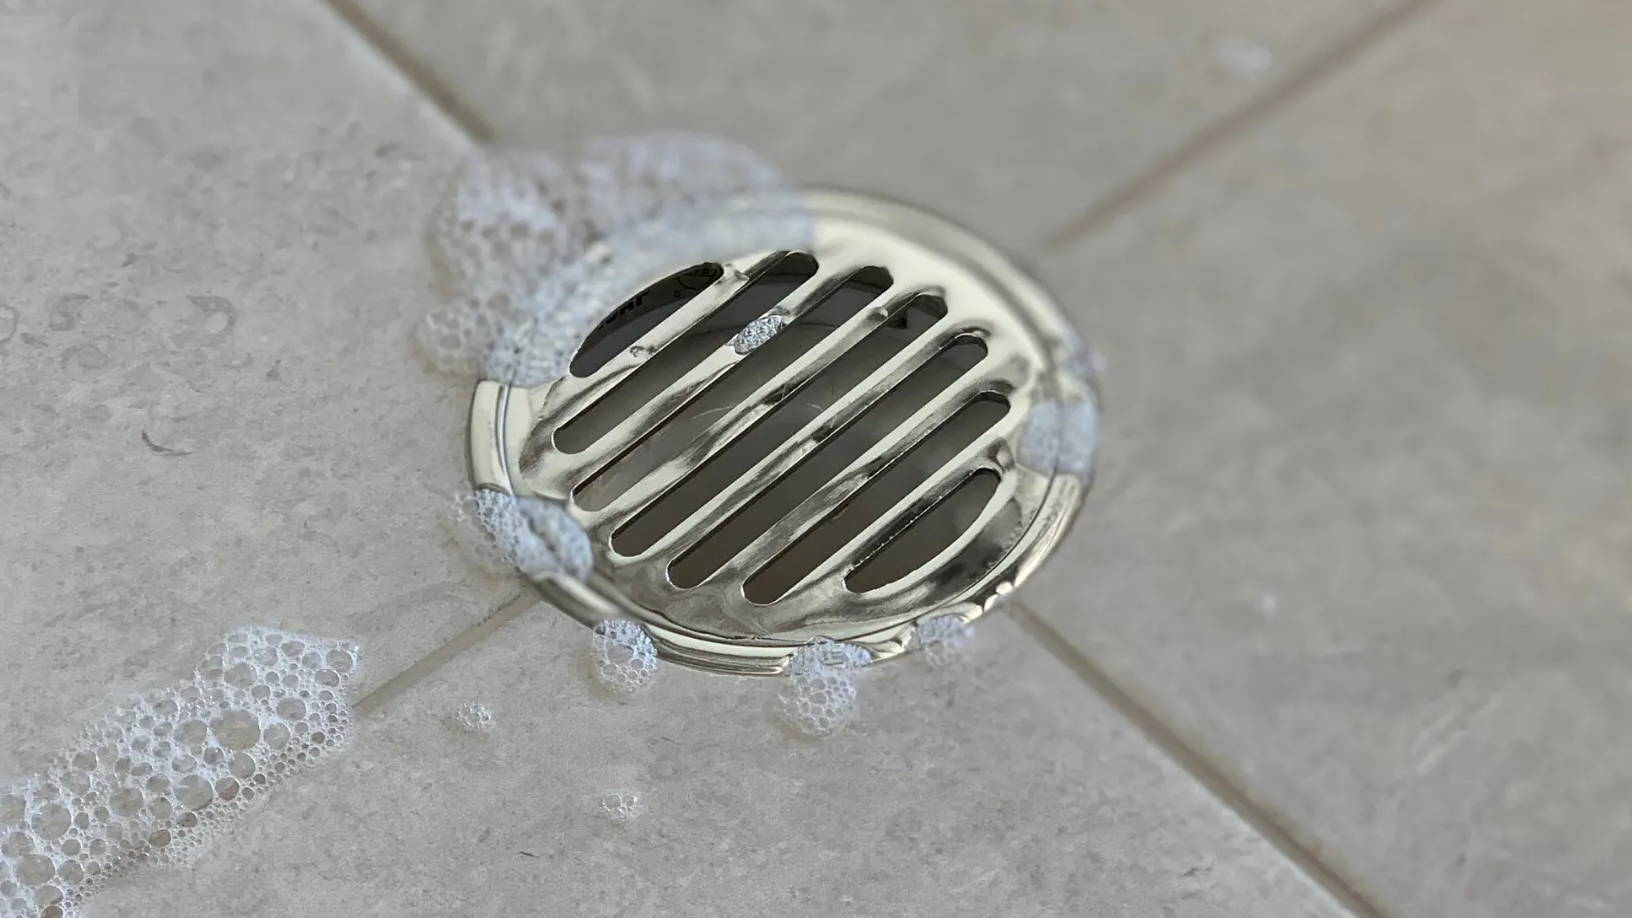 Round Shower Drain grates and floor wastes grates used typically for bathrooms and laundry